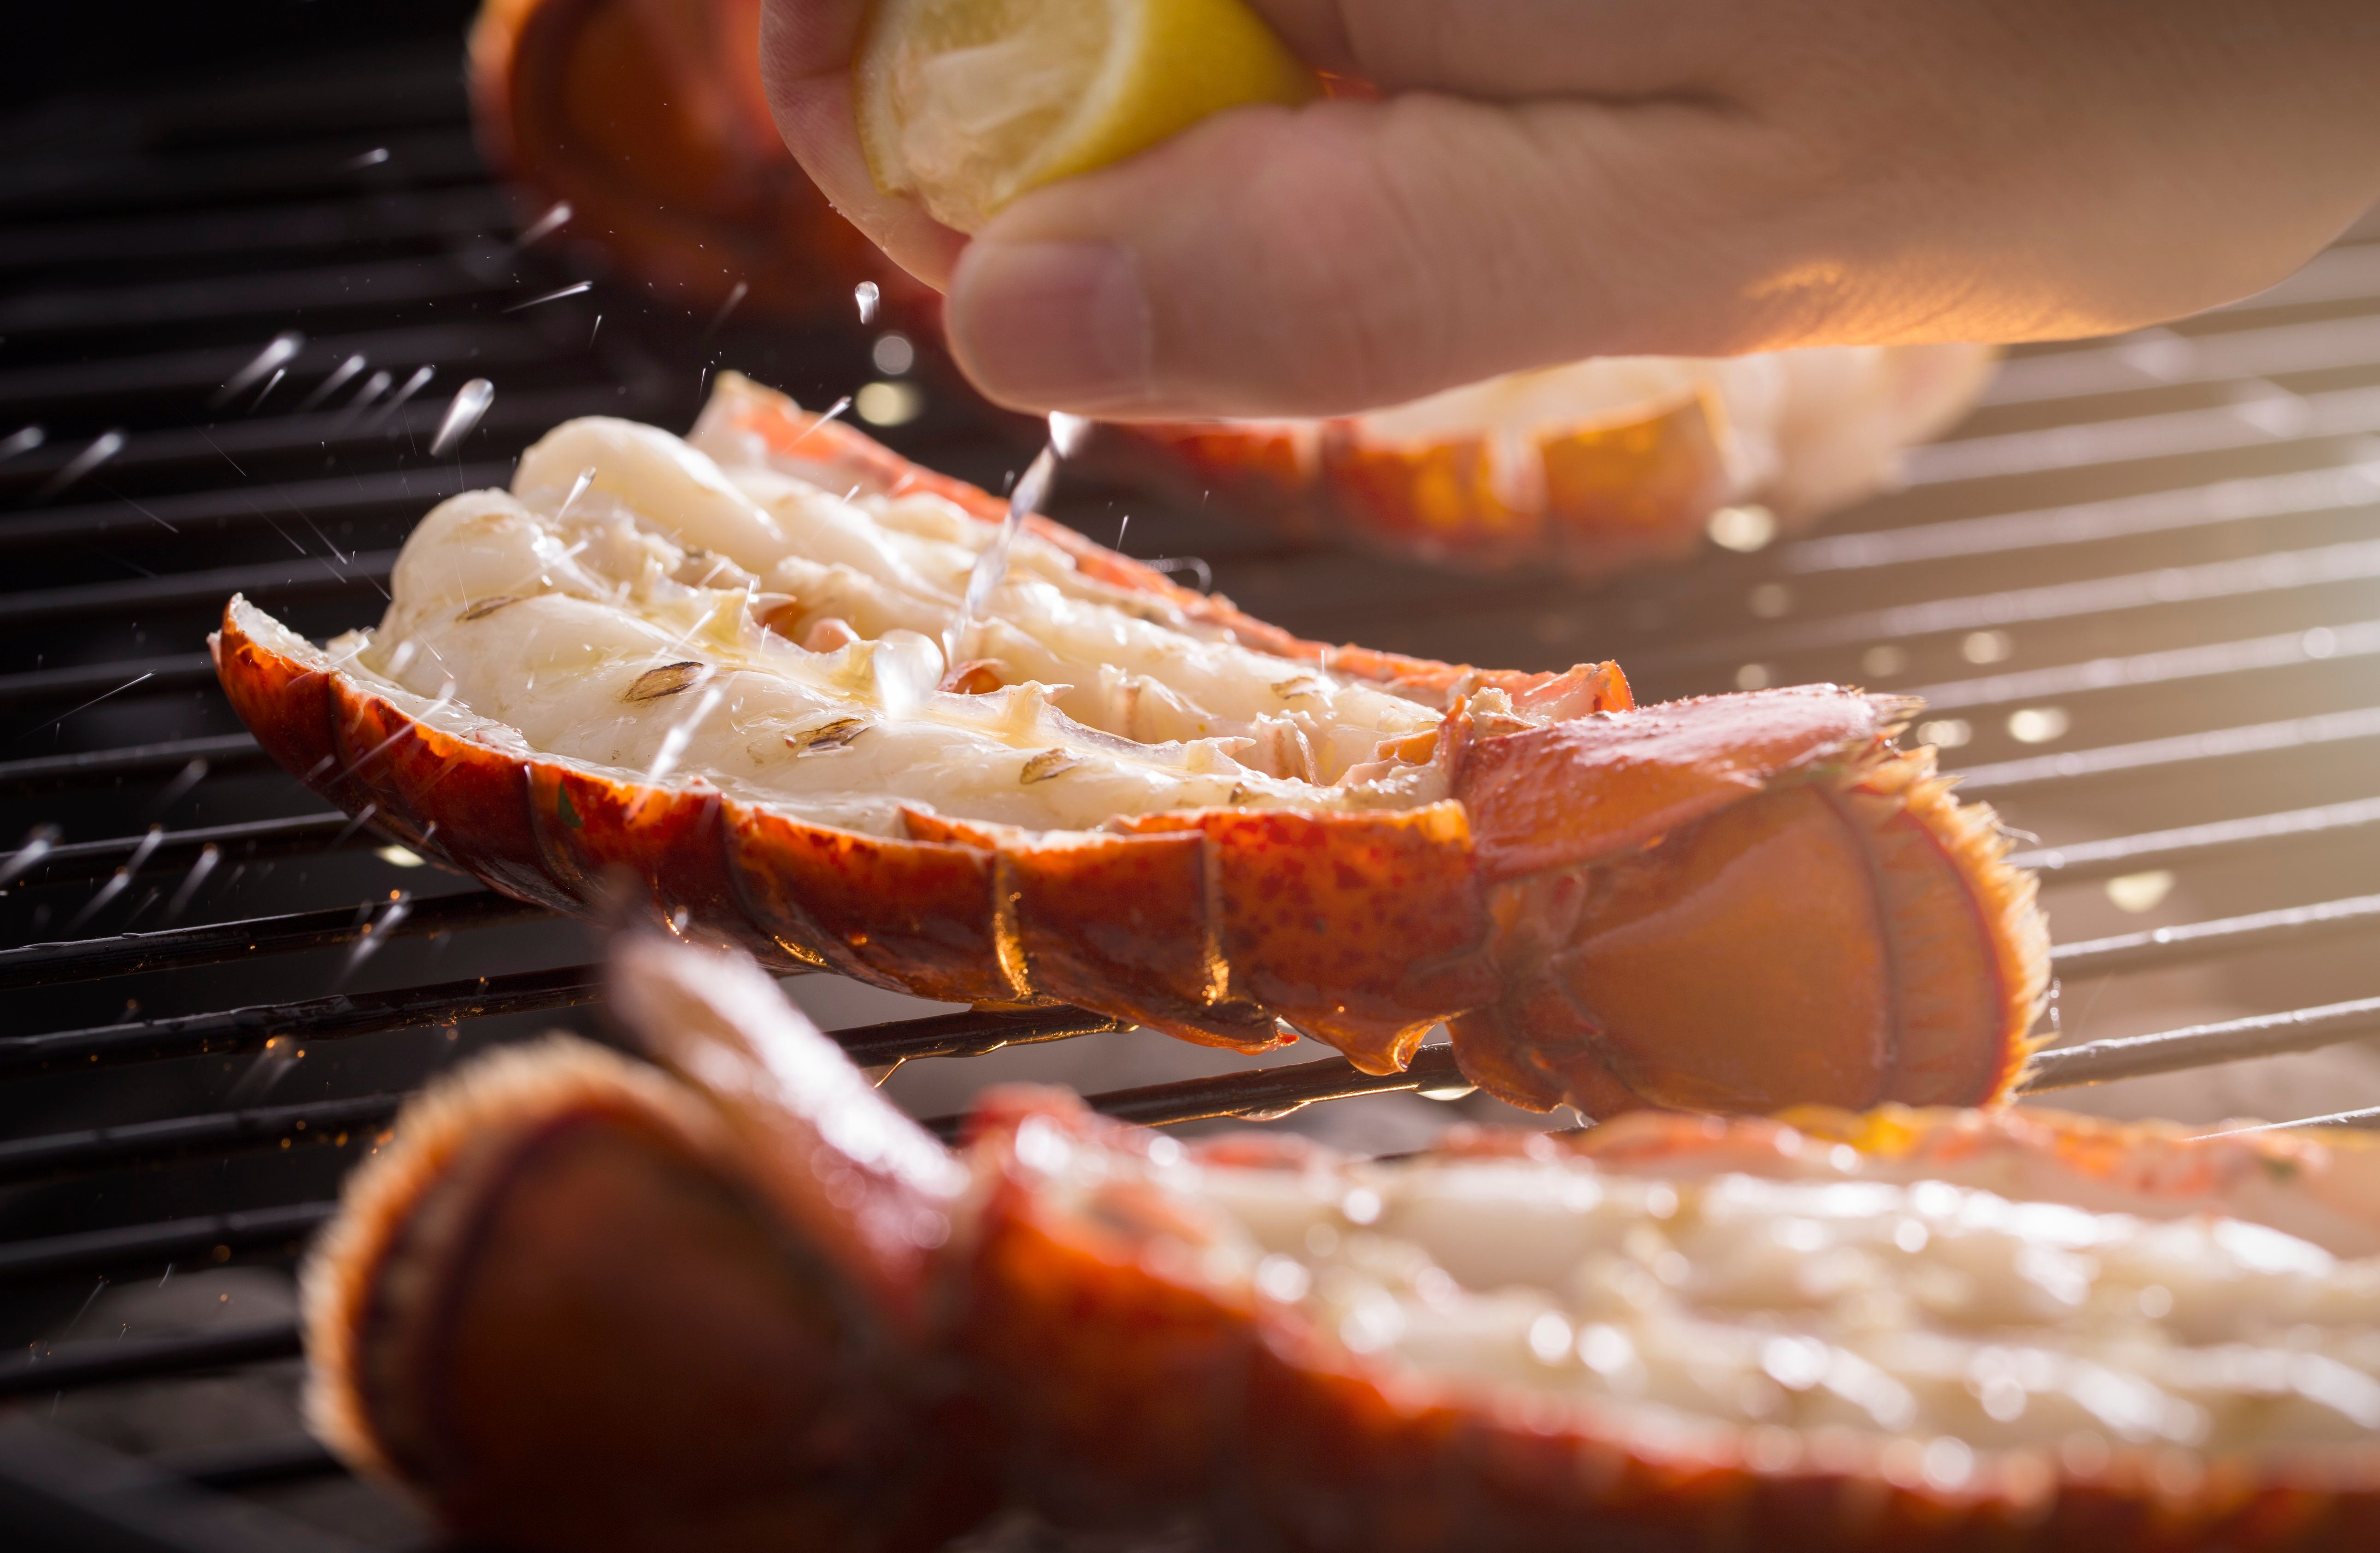 Grilled Lobster Tail on the Grill with Lemon